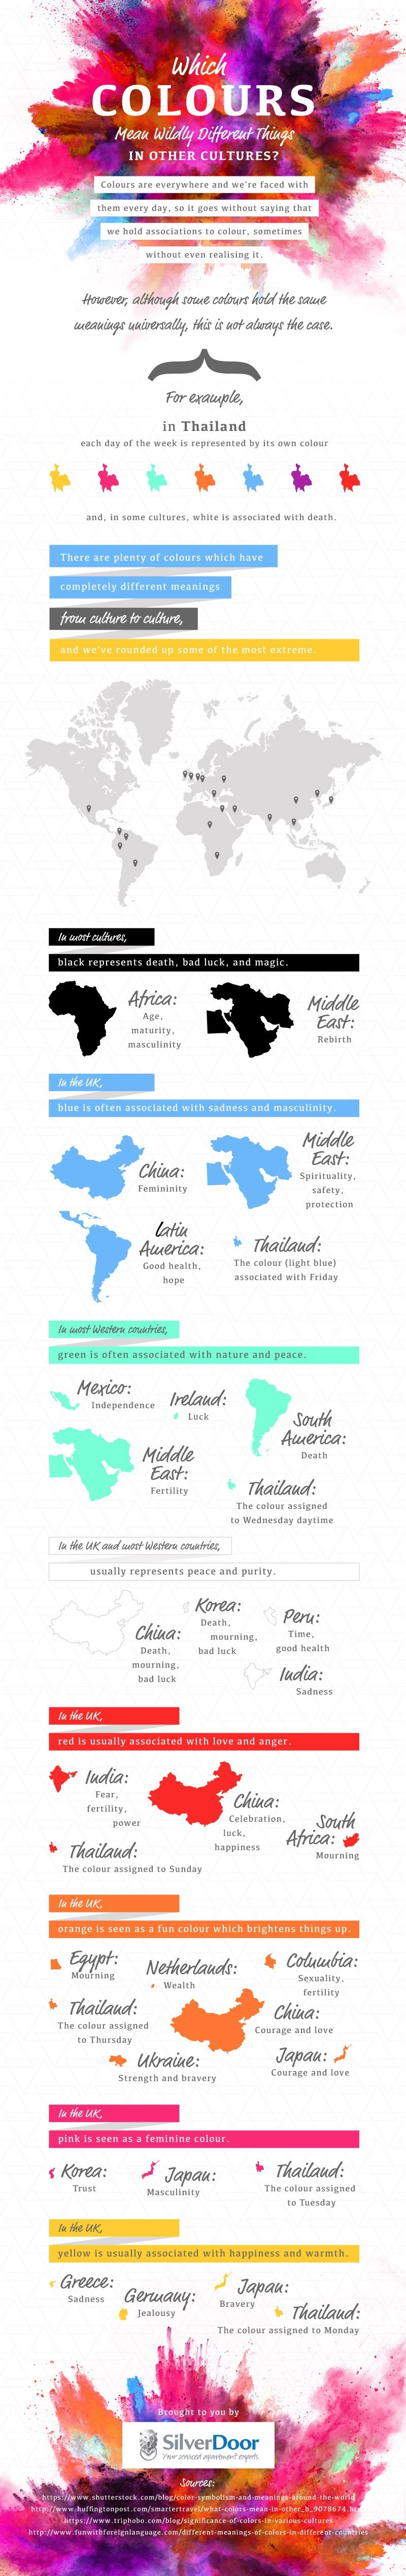 Which Colours Mean Wildly Different Things In Other Cultures?